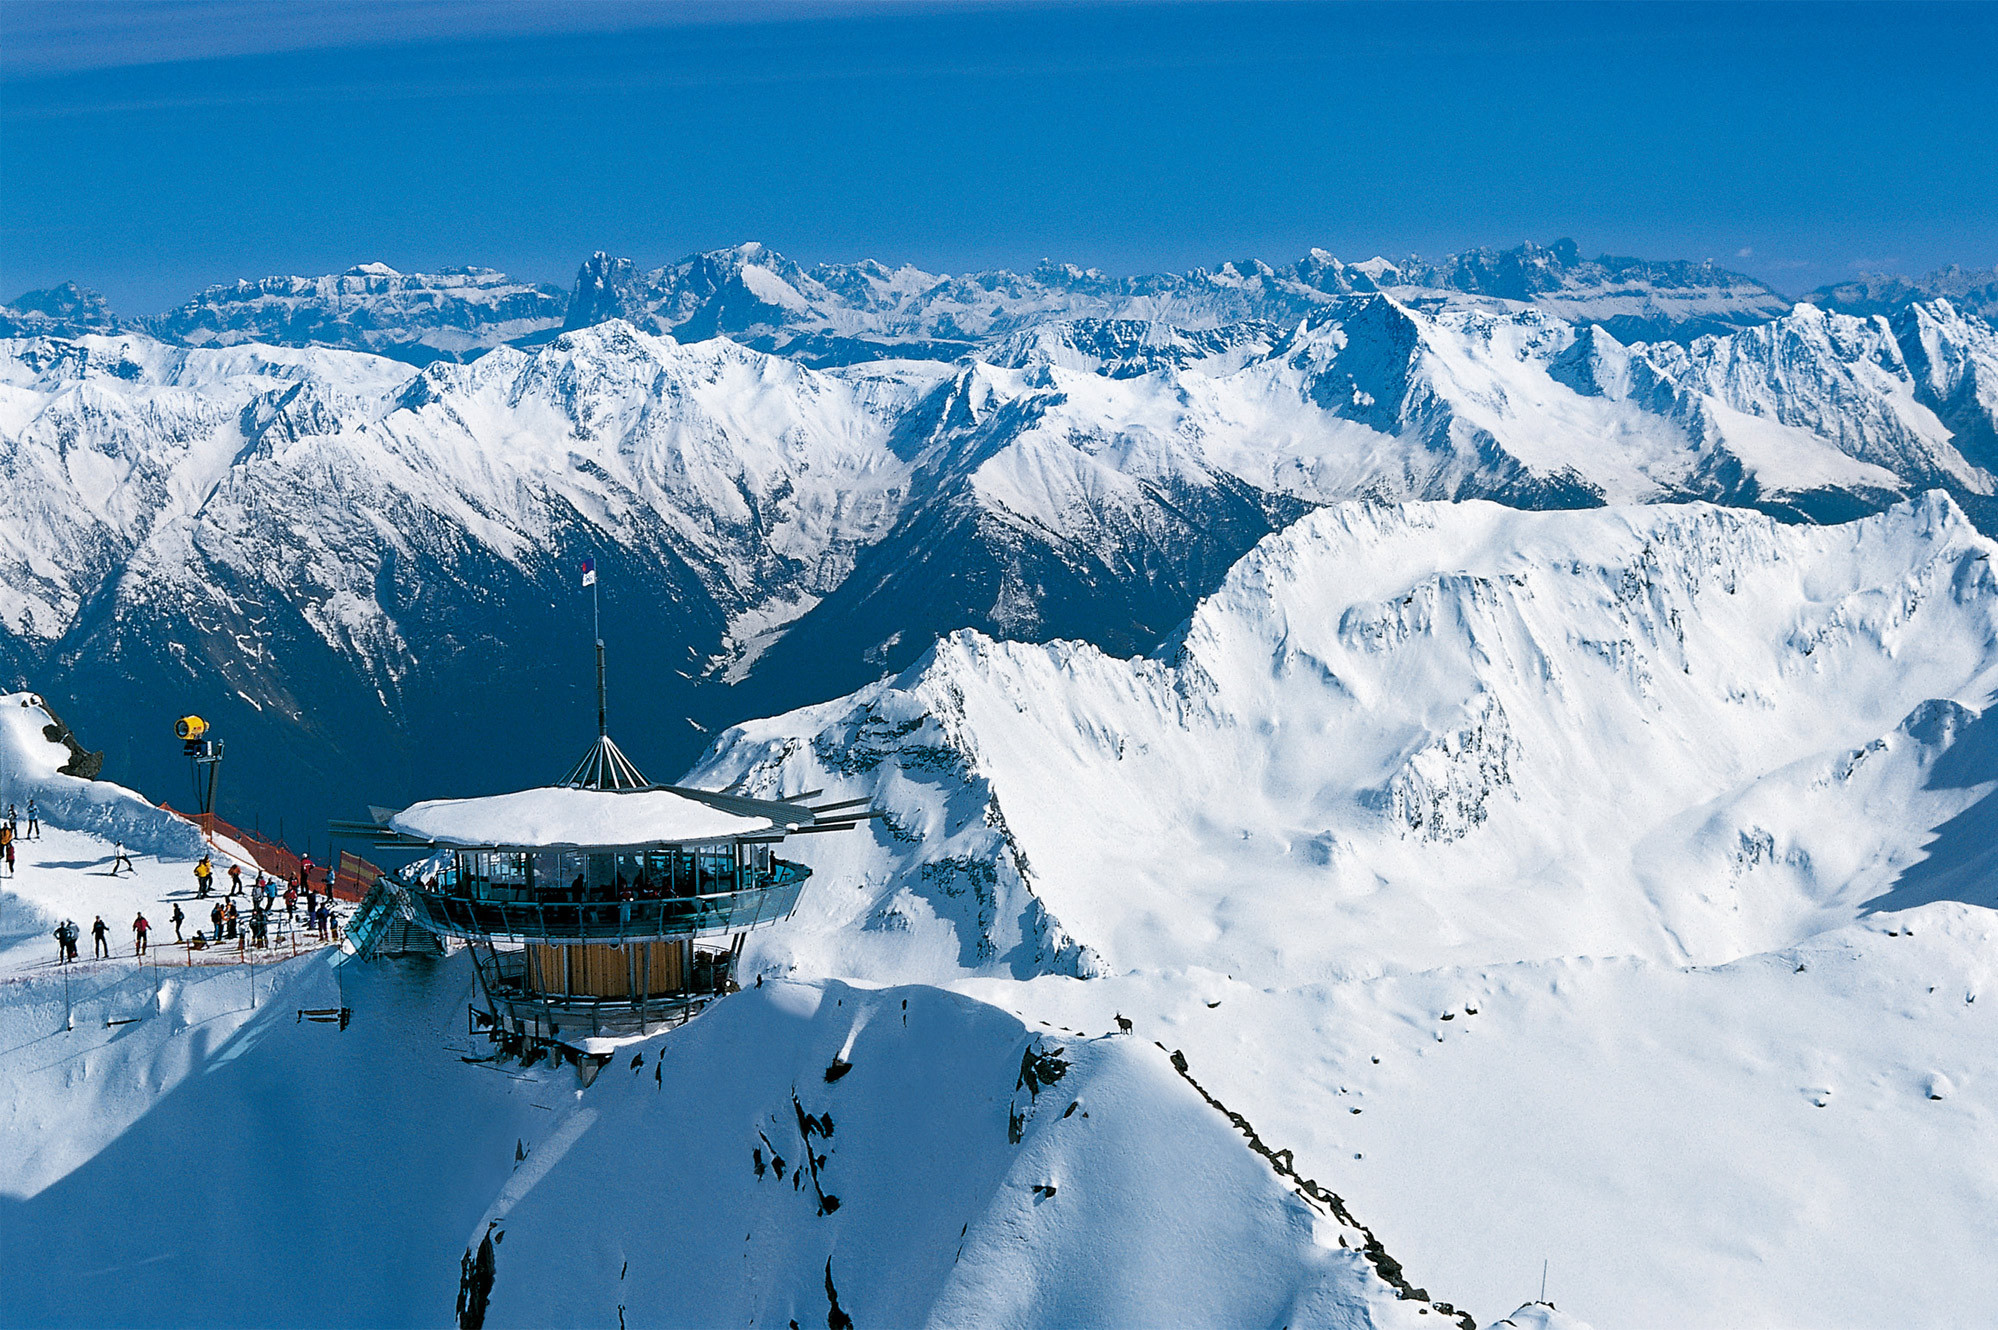 Ski lodge at the ski resort of Ischgl Austria wallpapers and images 1998x1330